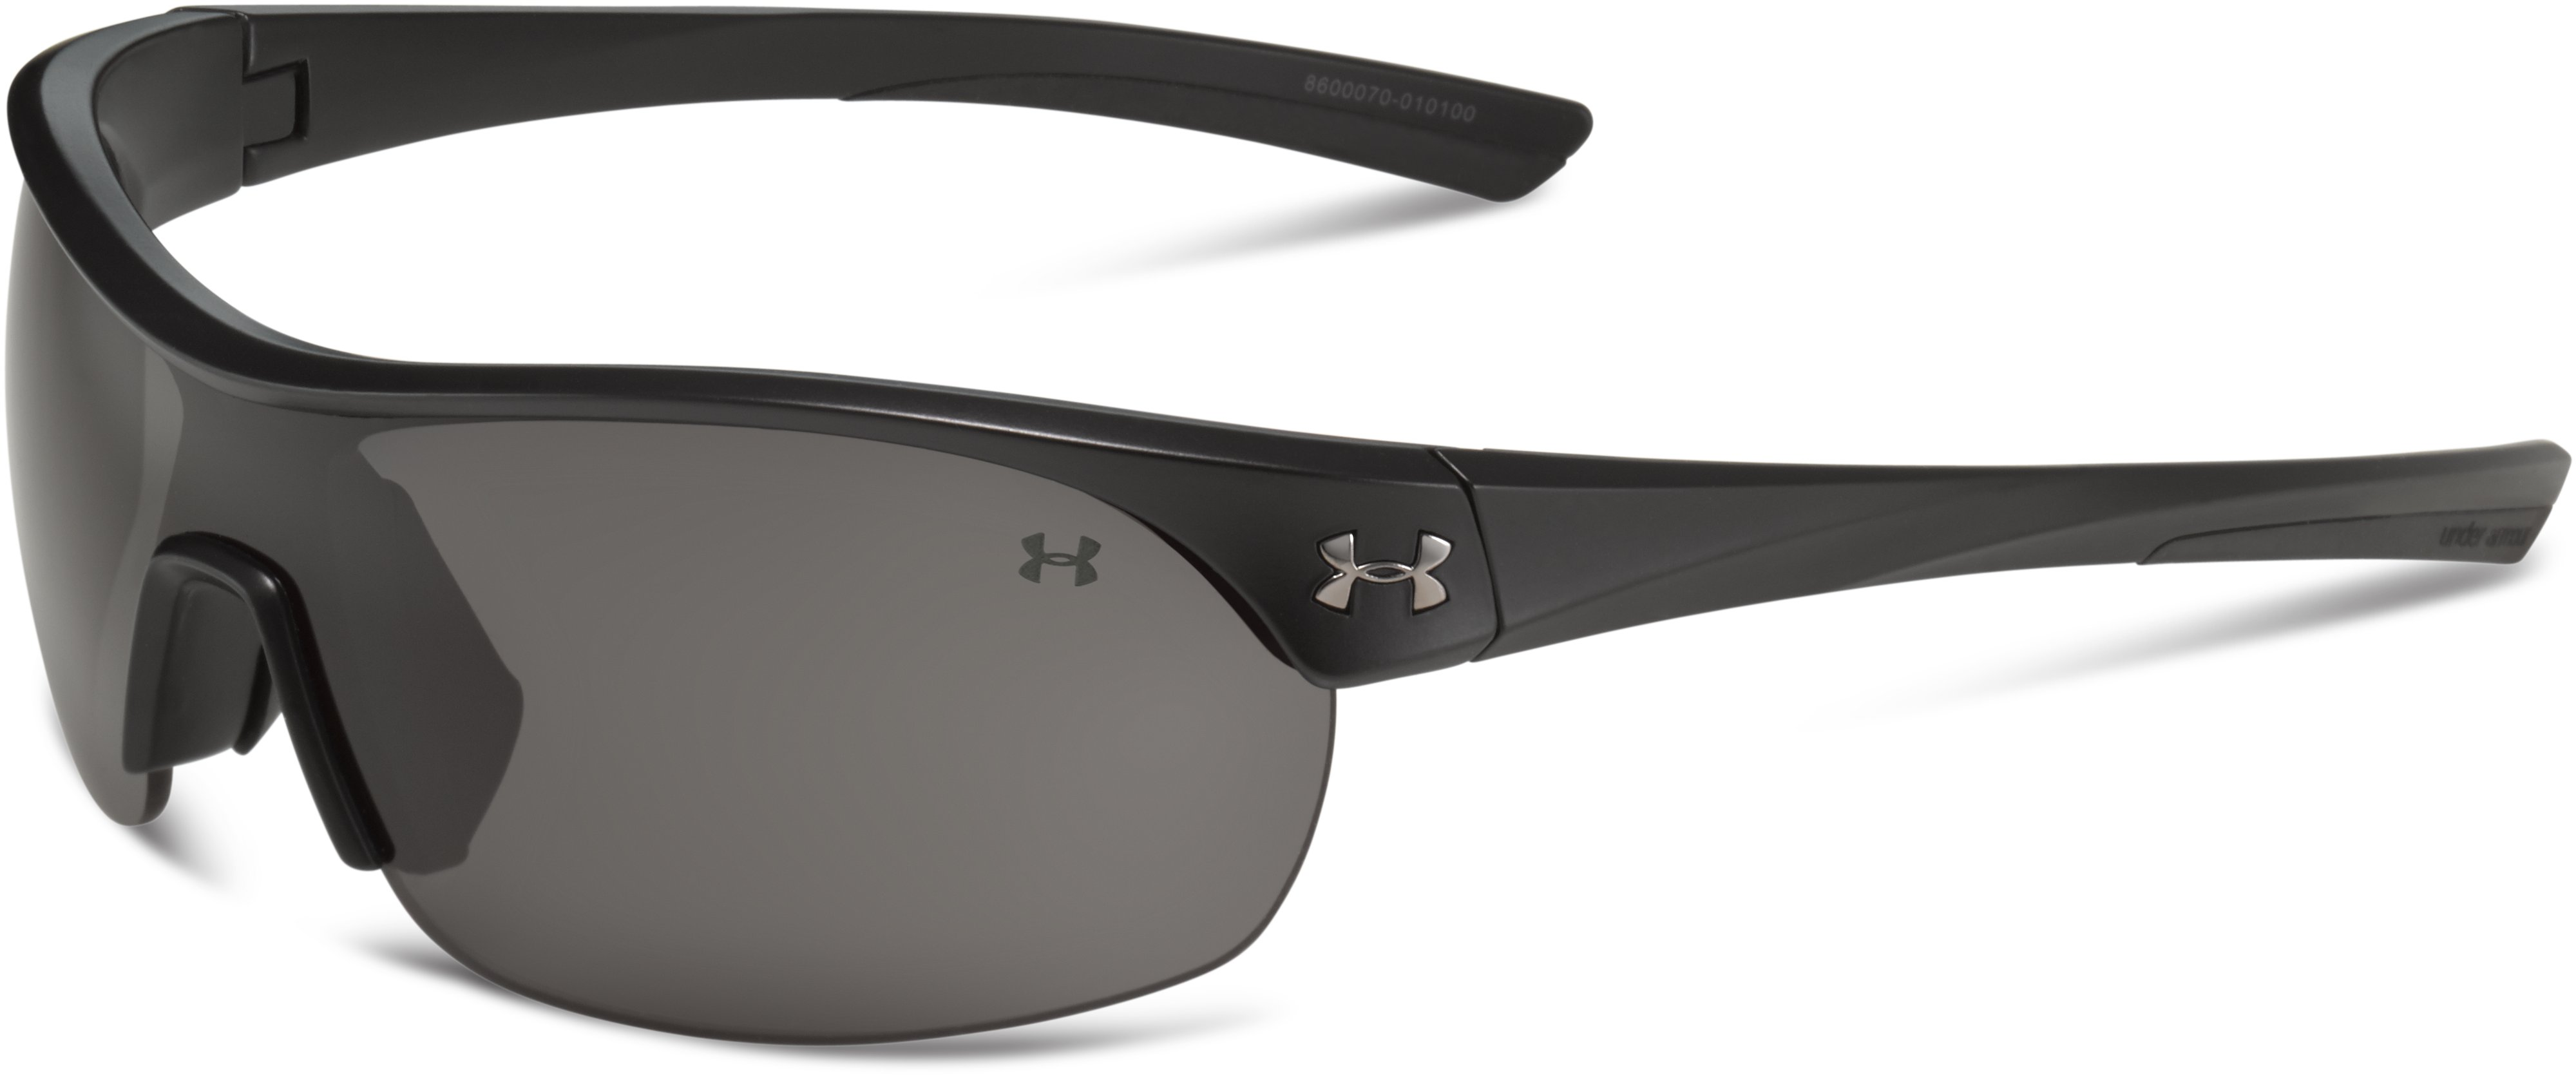 Women's UA Marbella Shield Sunglasses, Satin Black